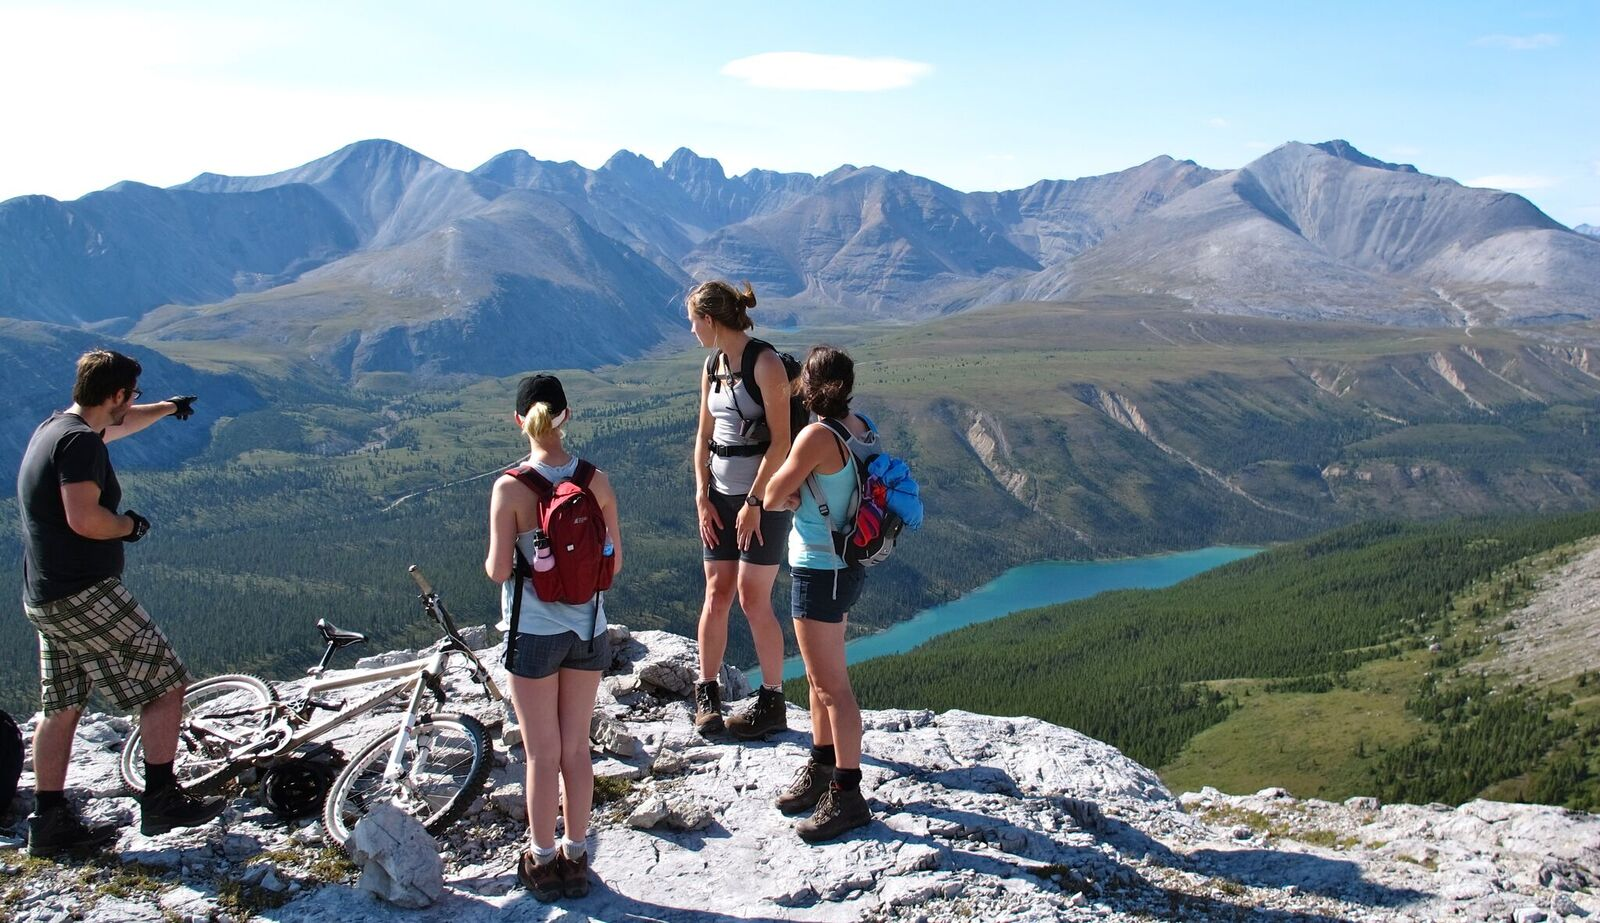 hikers enjoying the view